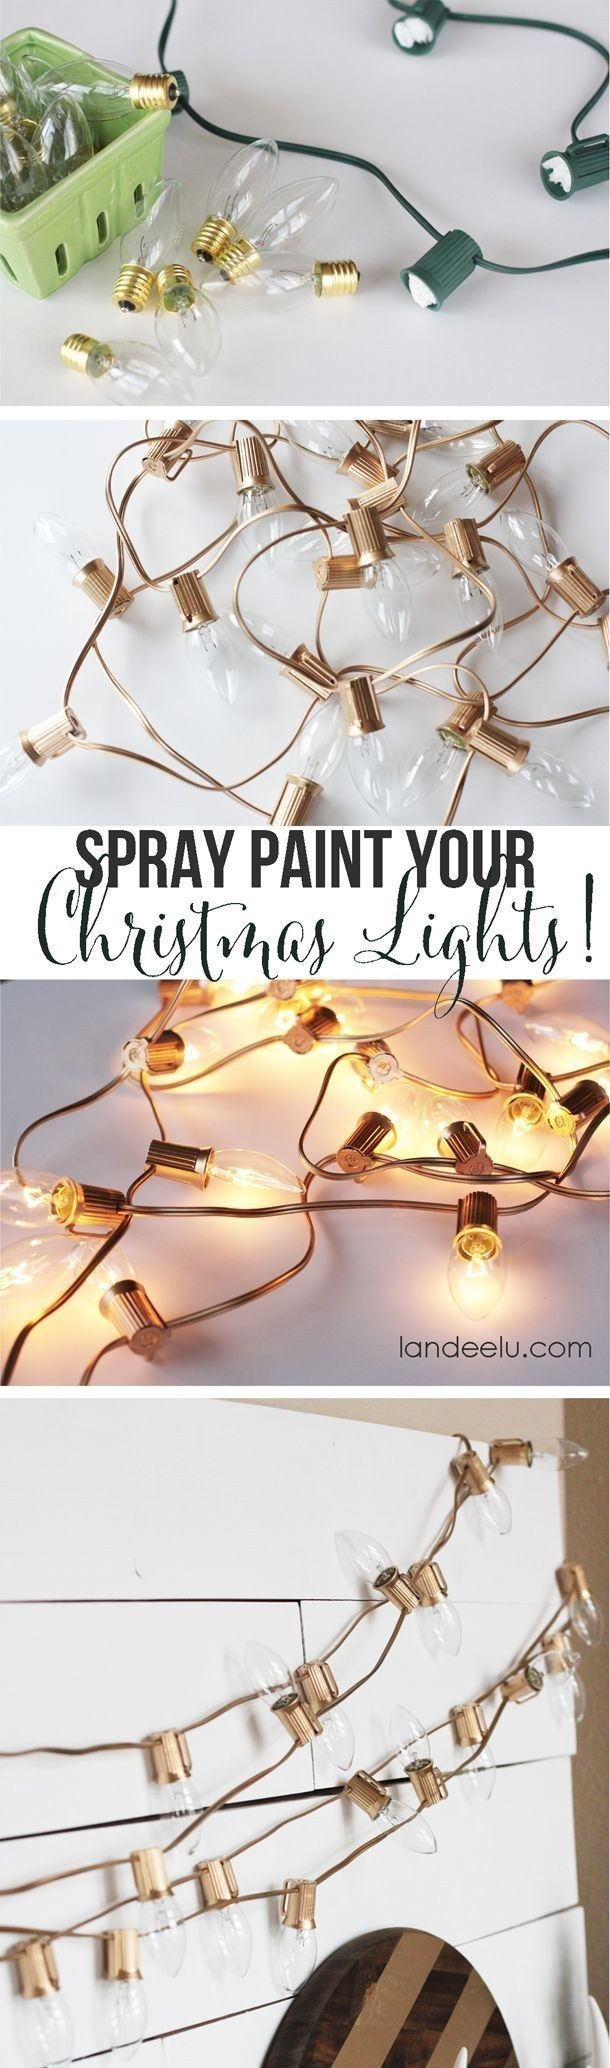 String Light DIY ideas for Cool Home Decor - Spray Painted Christmas Lights are…